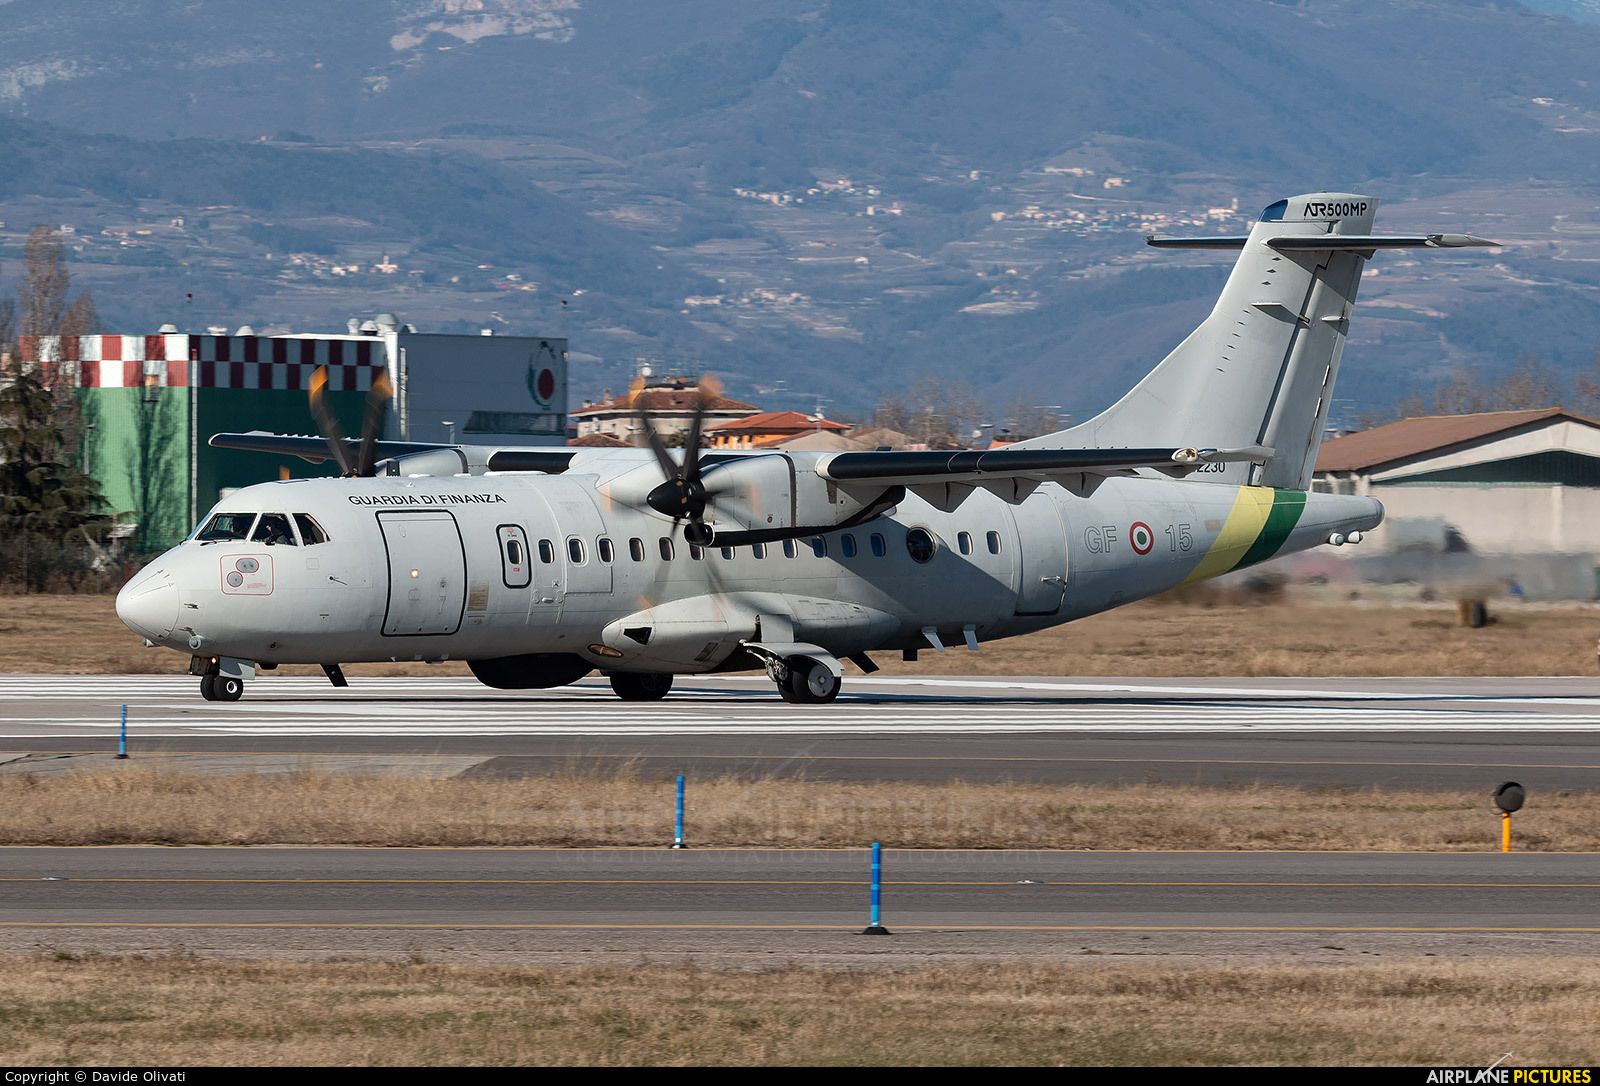 Italy - Guardia di Finanza MM62230 aircraft at Verona - Villafranca